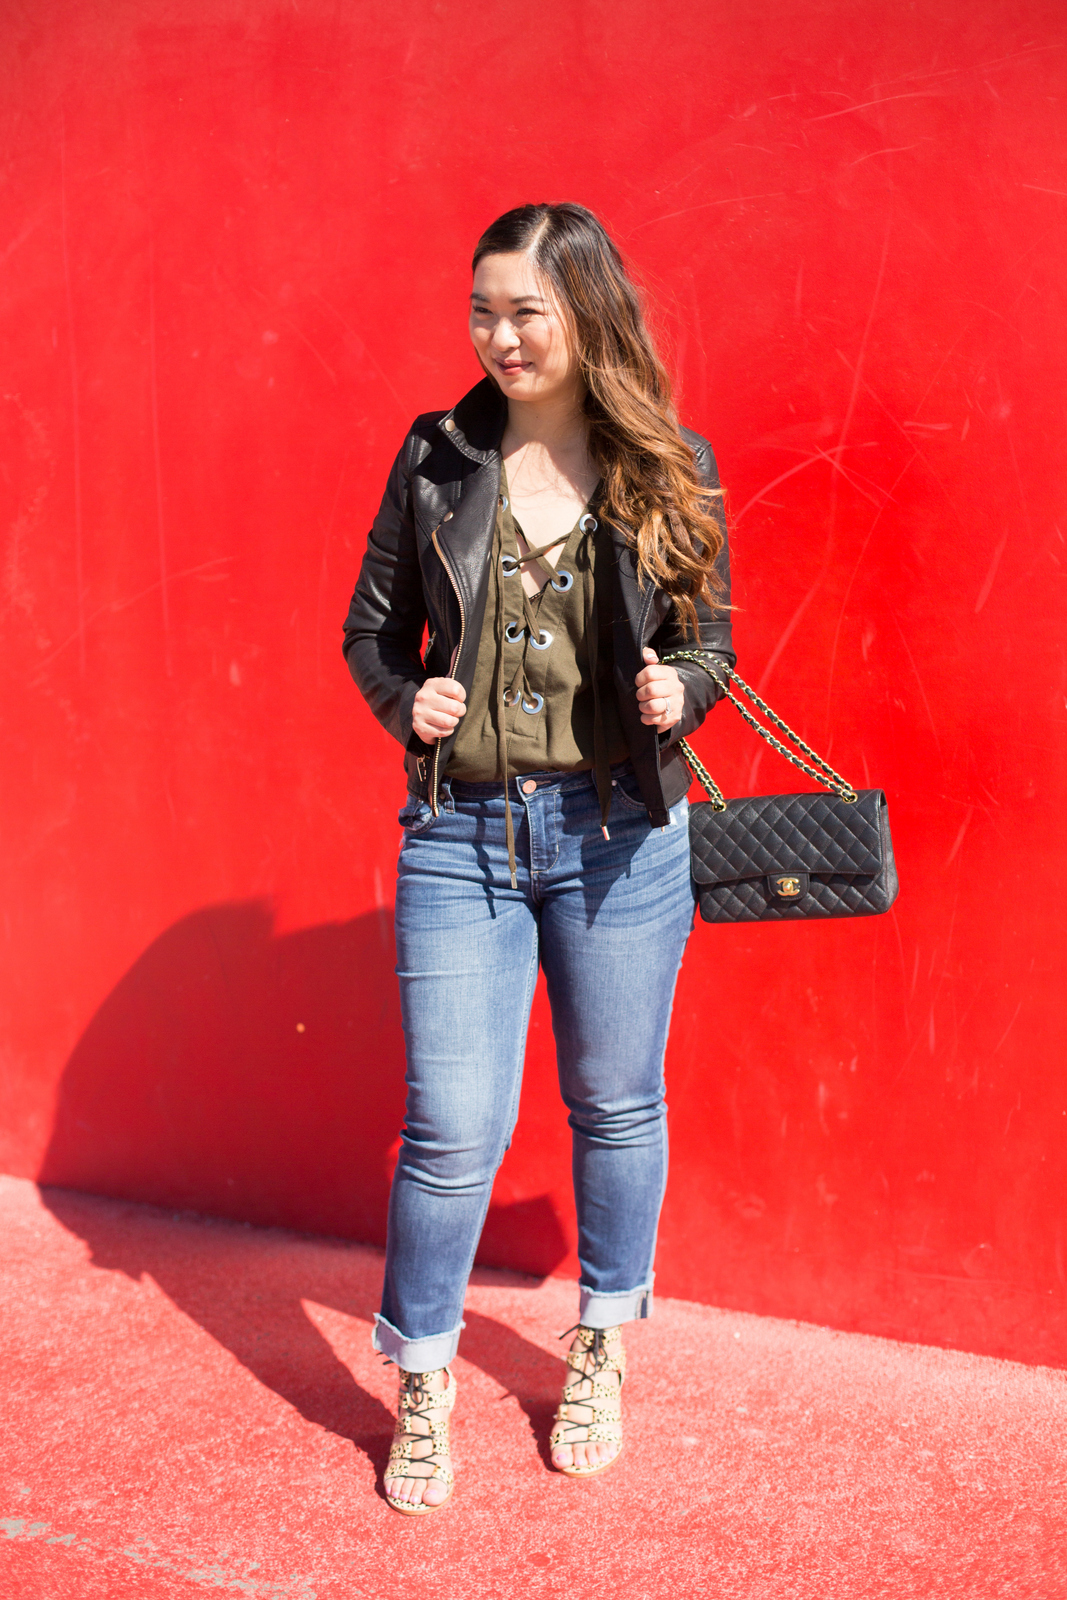 Boyfriend Denim Jeans Two Ways: Dressed Down and Up by Utah fashion blogger Sandy A La Mode